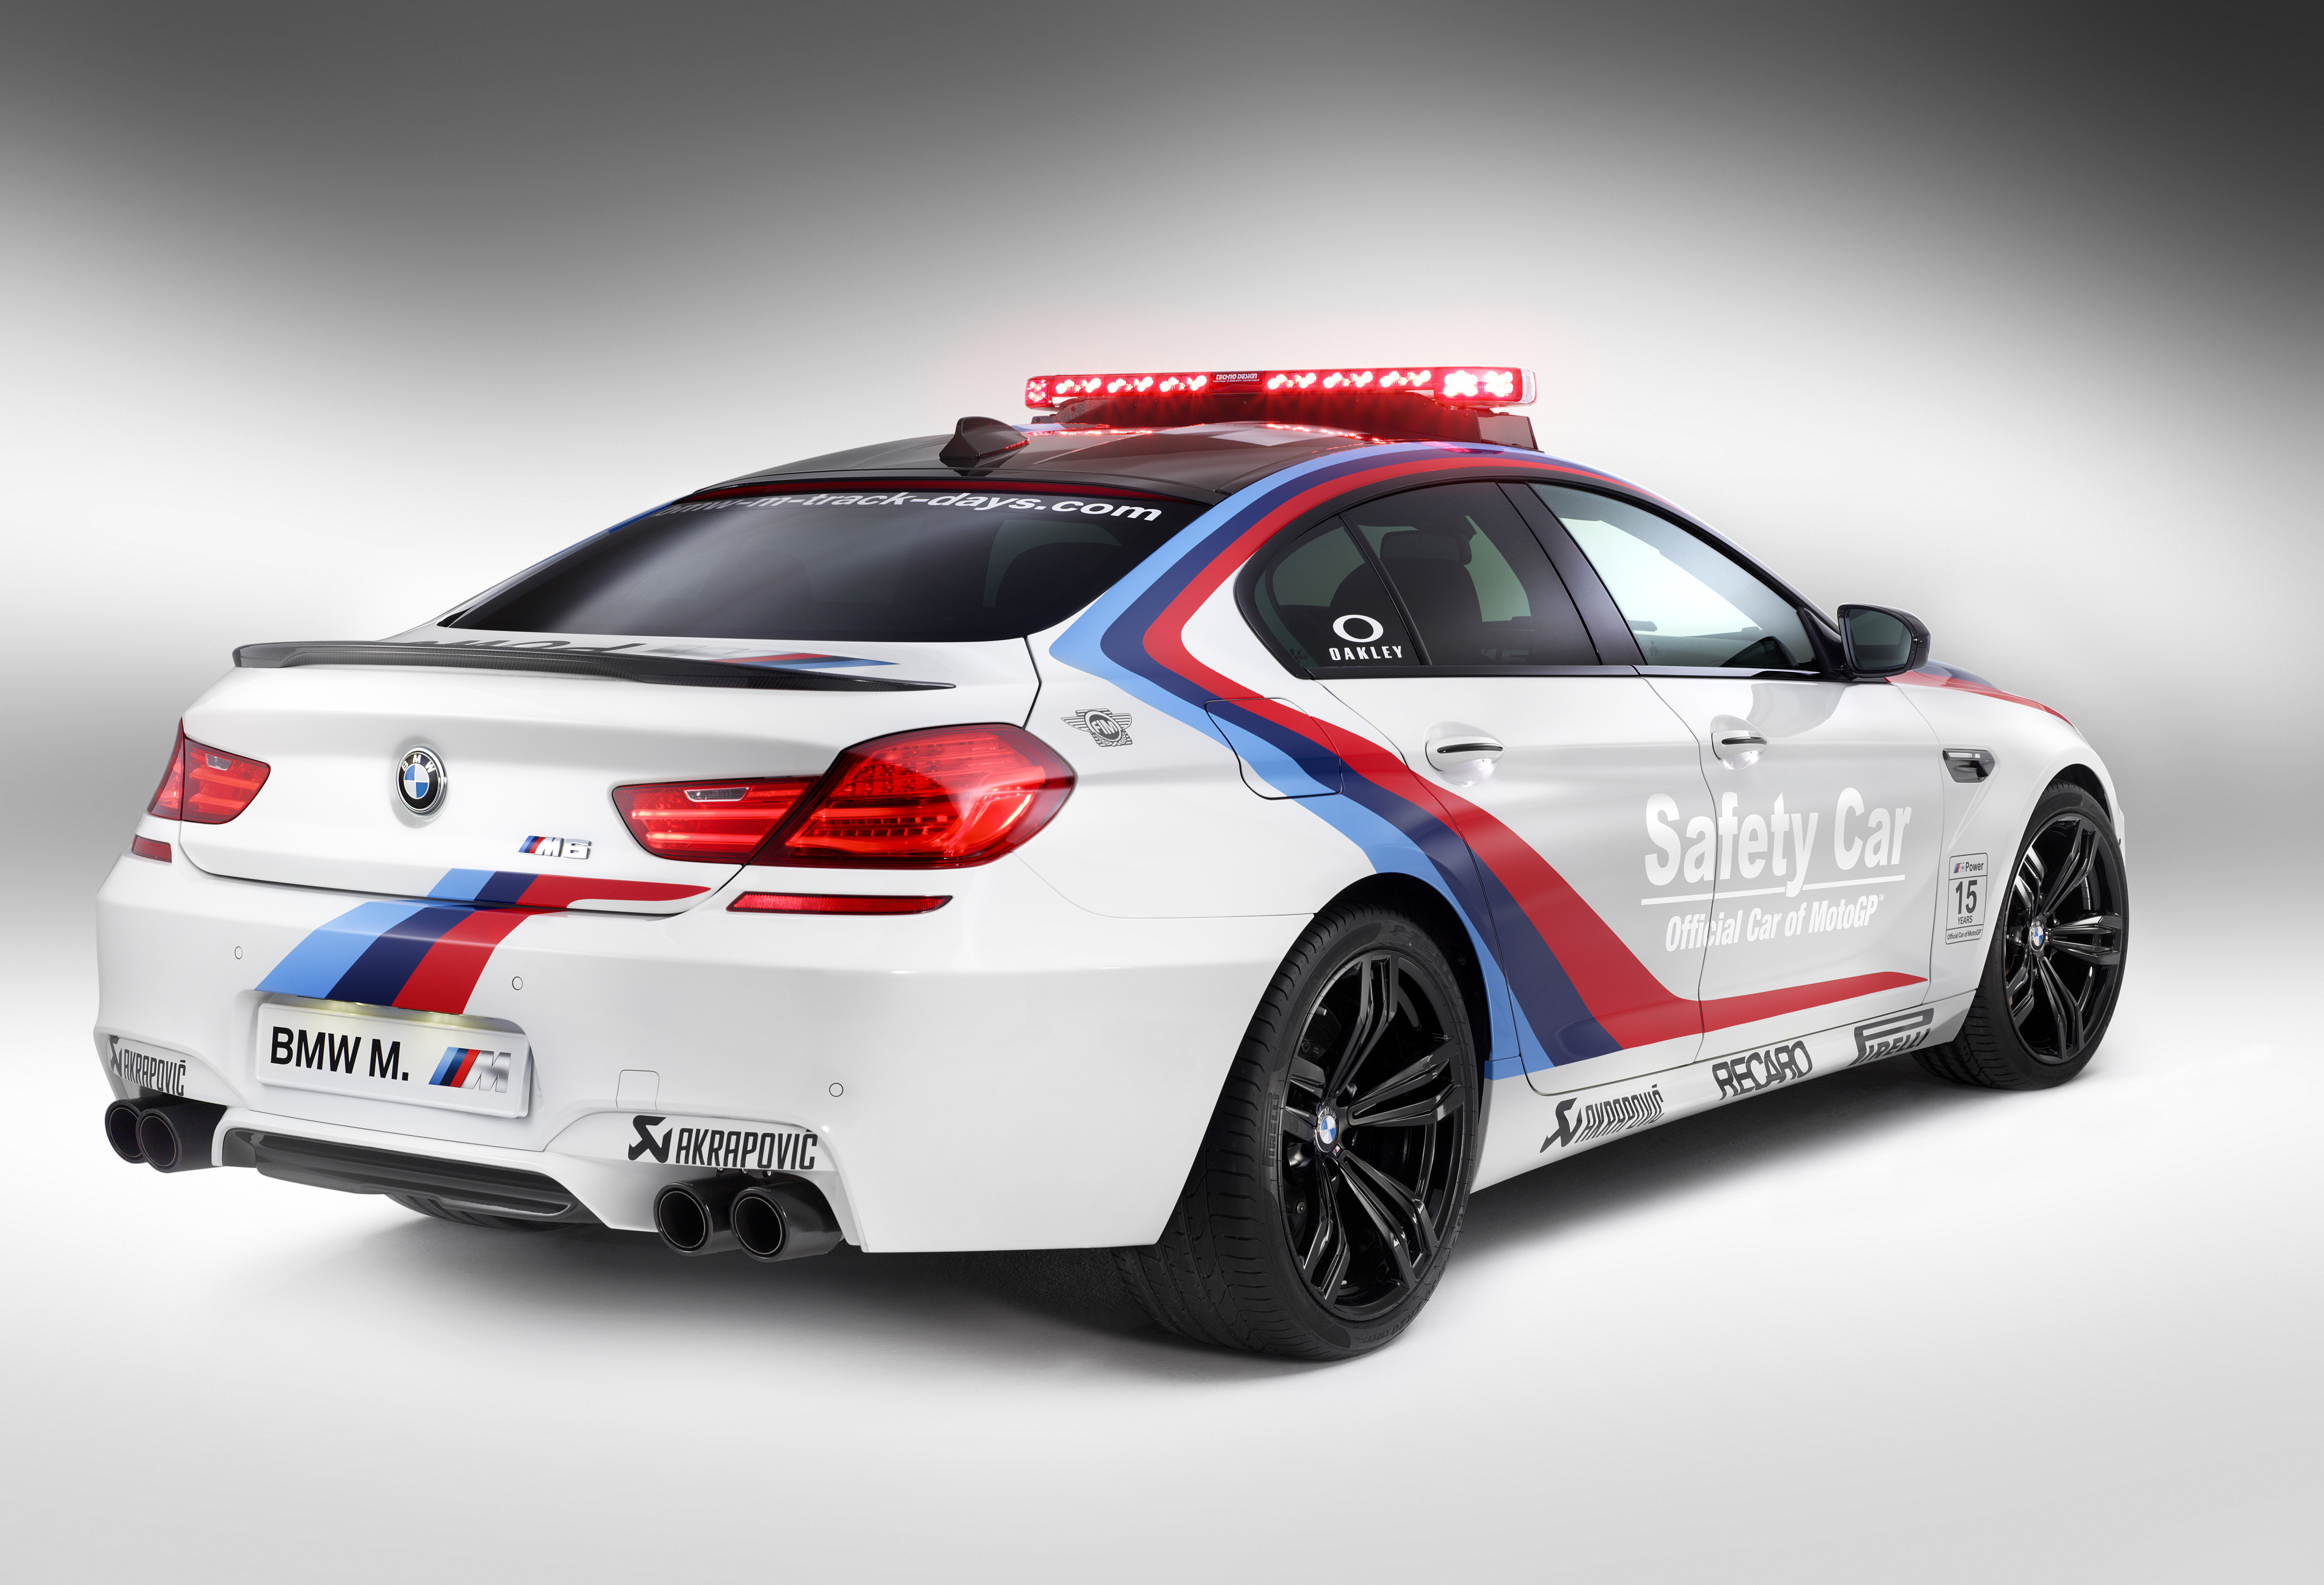 2018 BMW M4 Coupe DTM Safety Car photo - 4